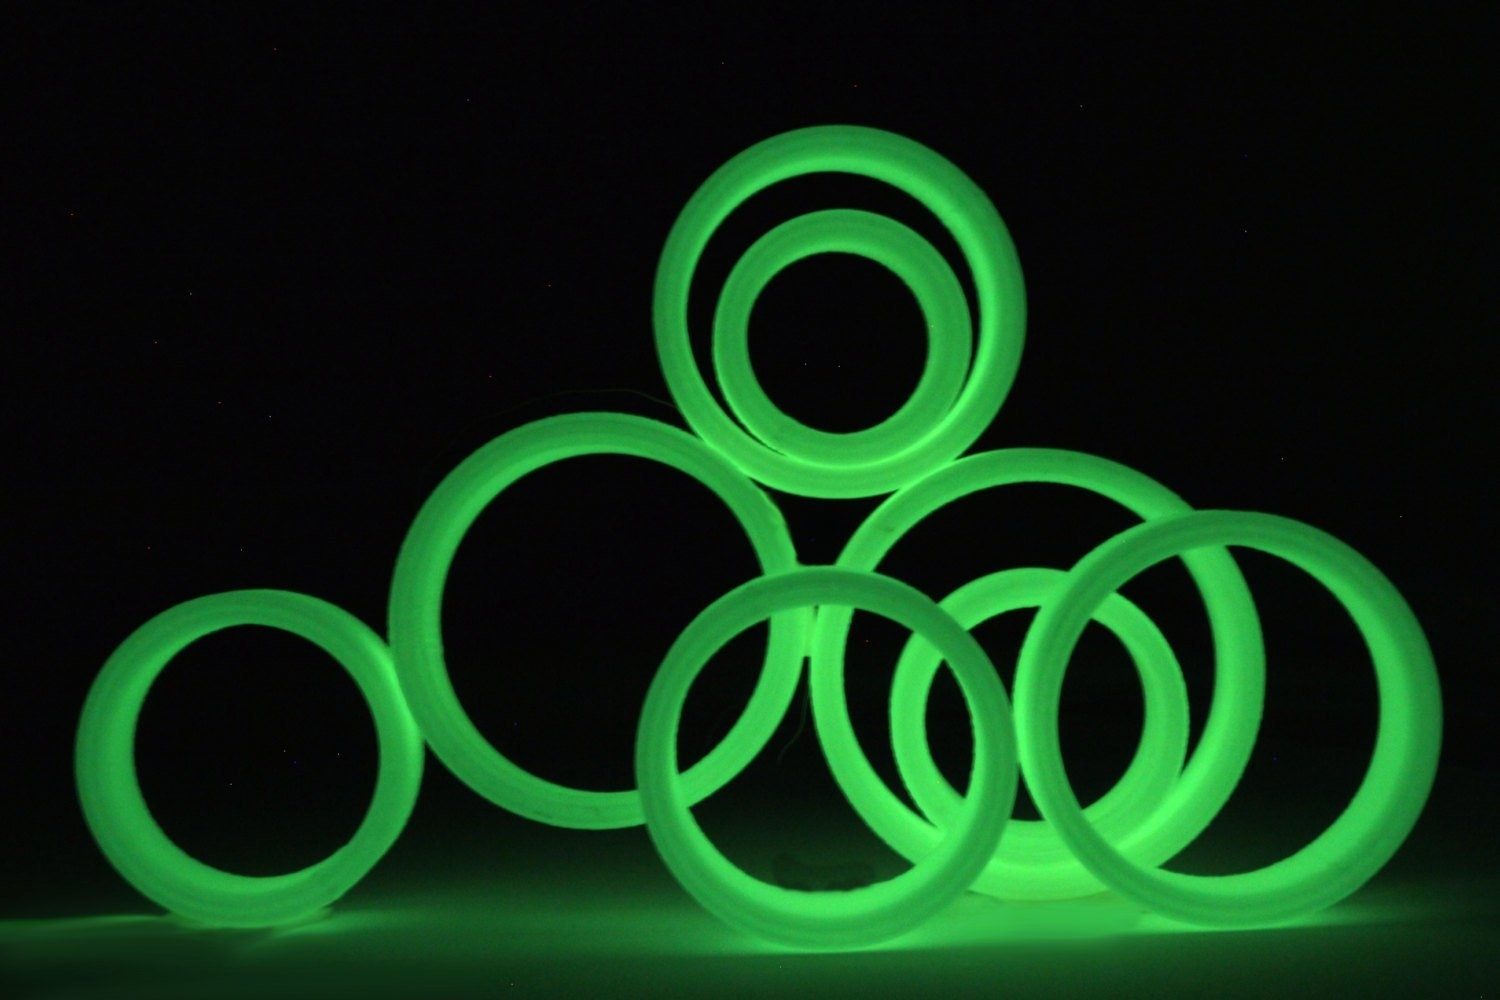 glow in the dark in rings in various sizes